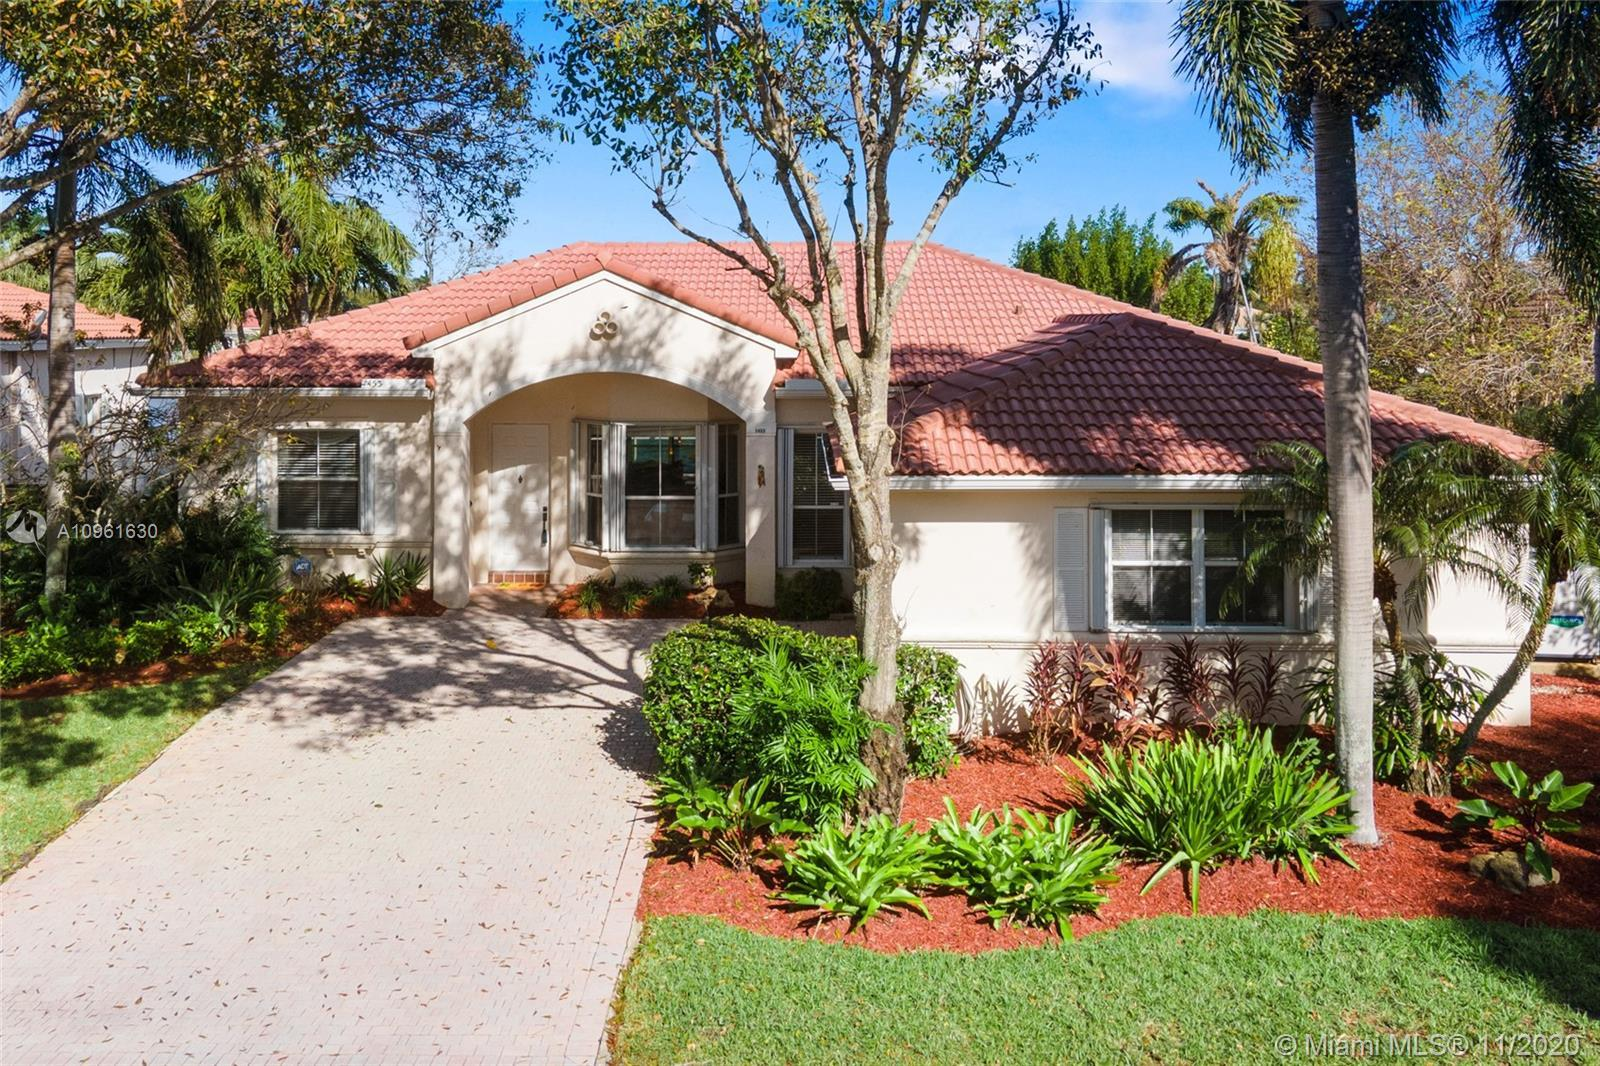 Very nice lakefront home in the community of Oakridge. This is an immaculate 3 bedroom/2 bath split